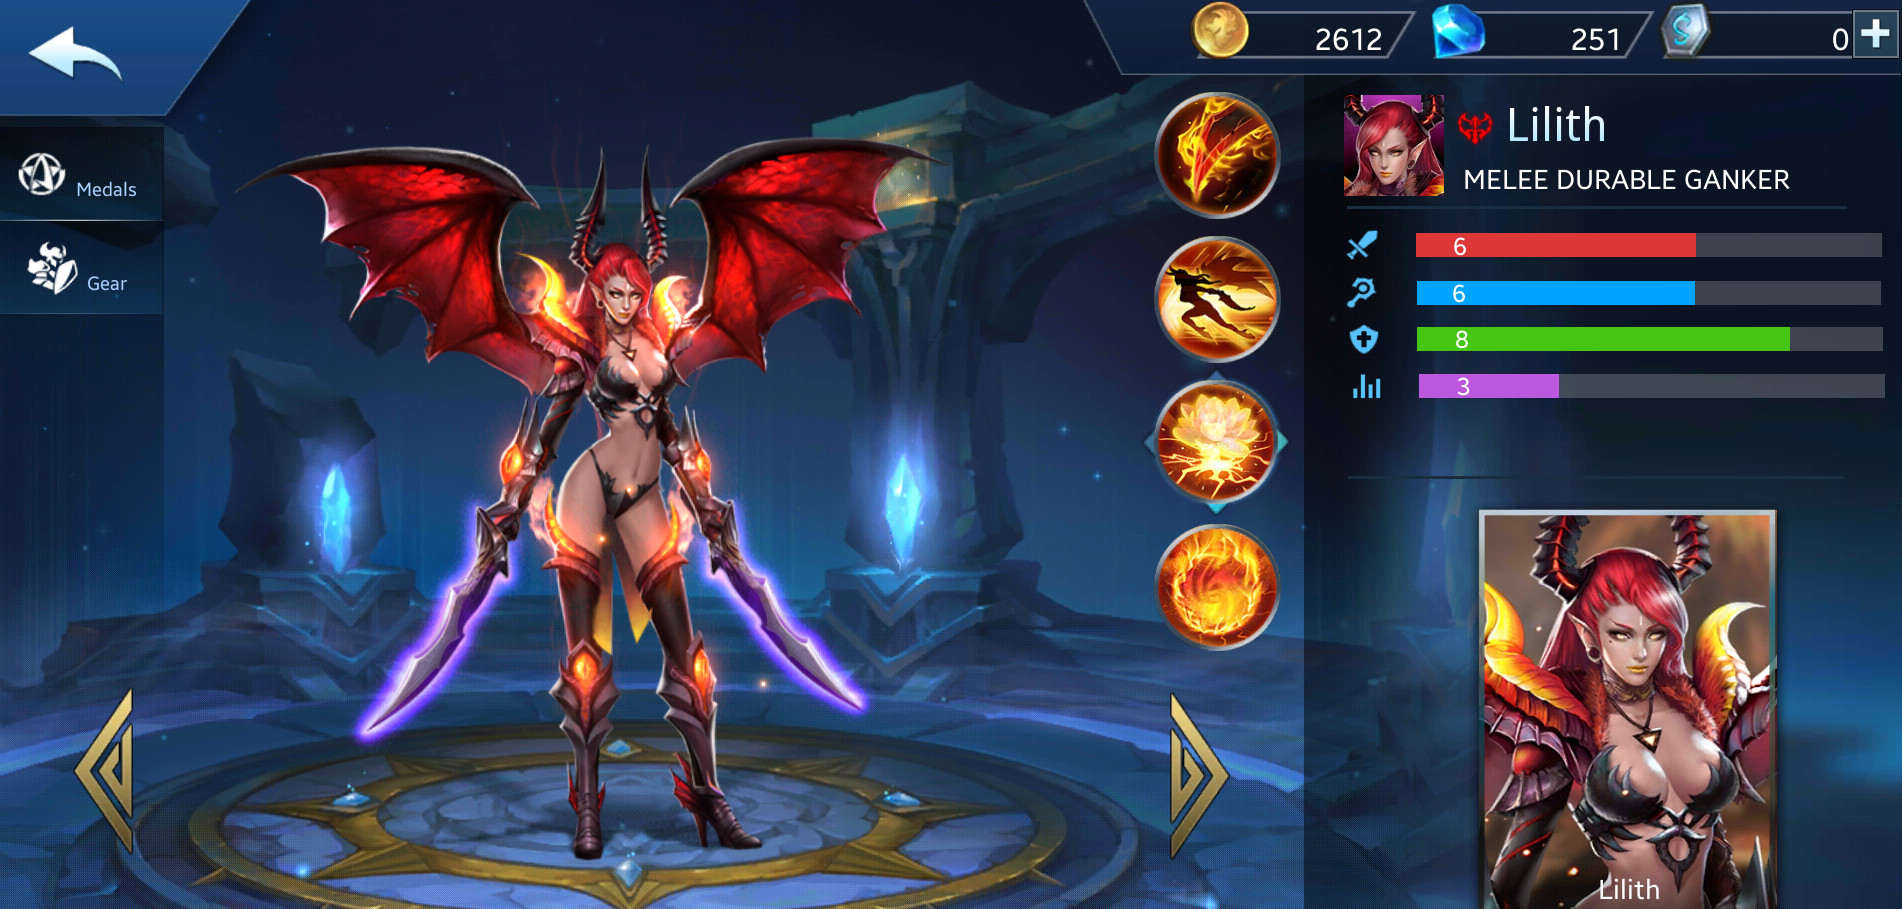 Photo of Lilith Build Guide In Heroes Evolved Mobile Game